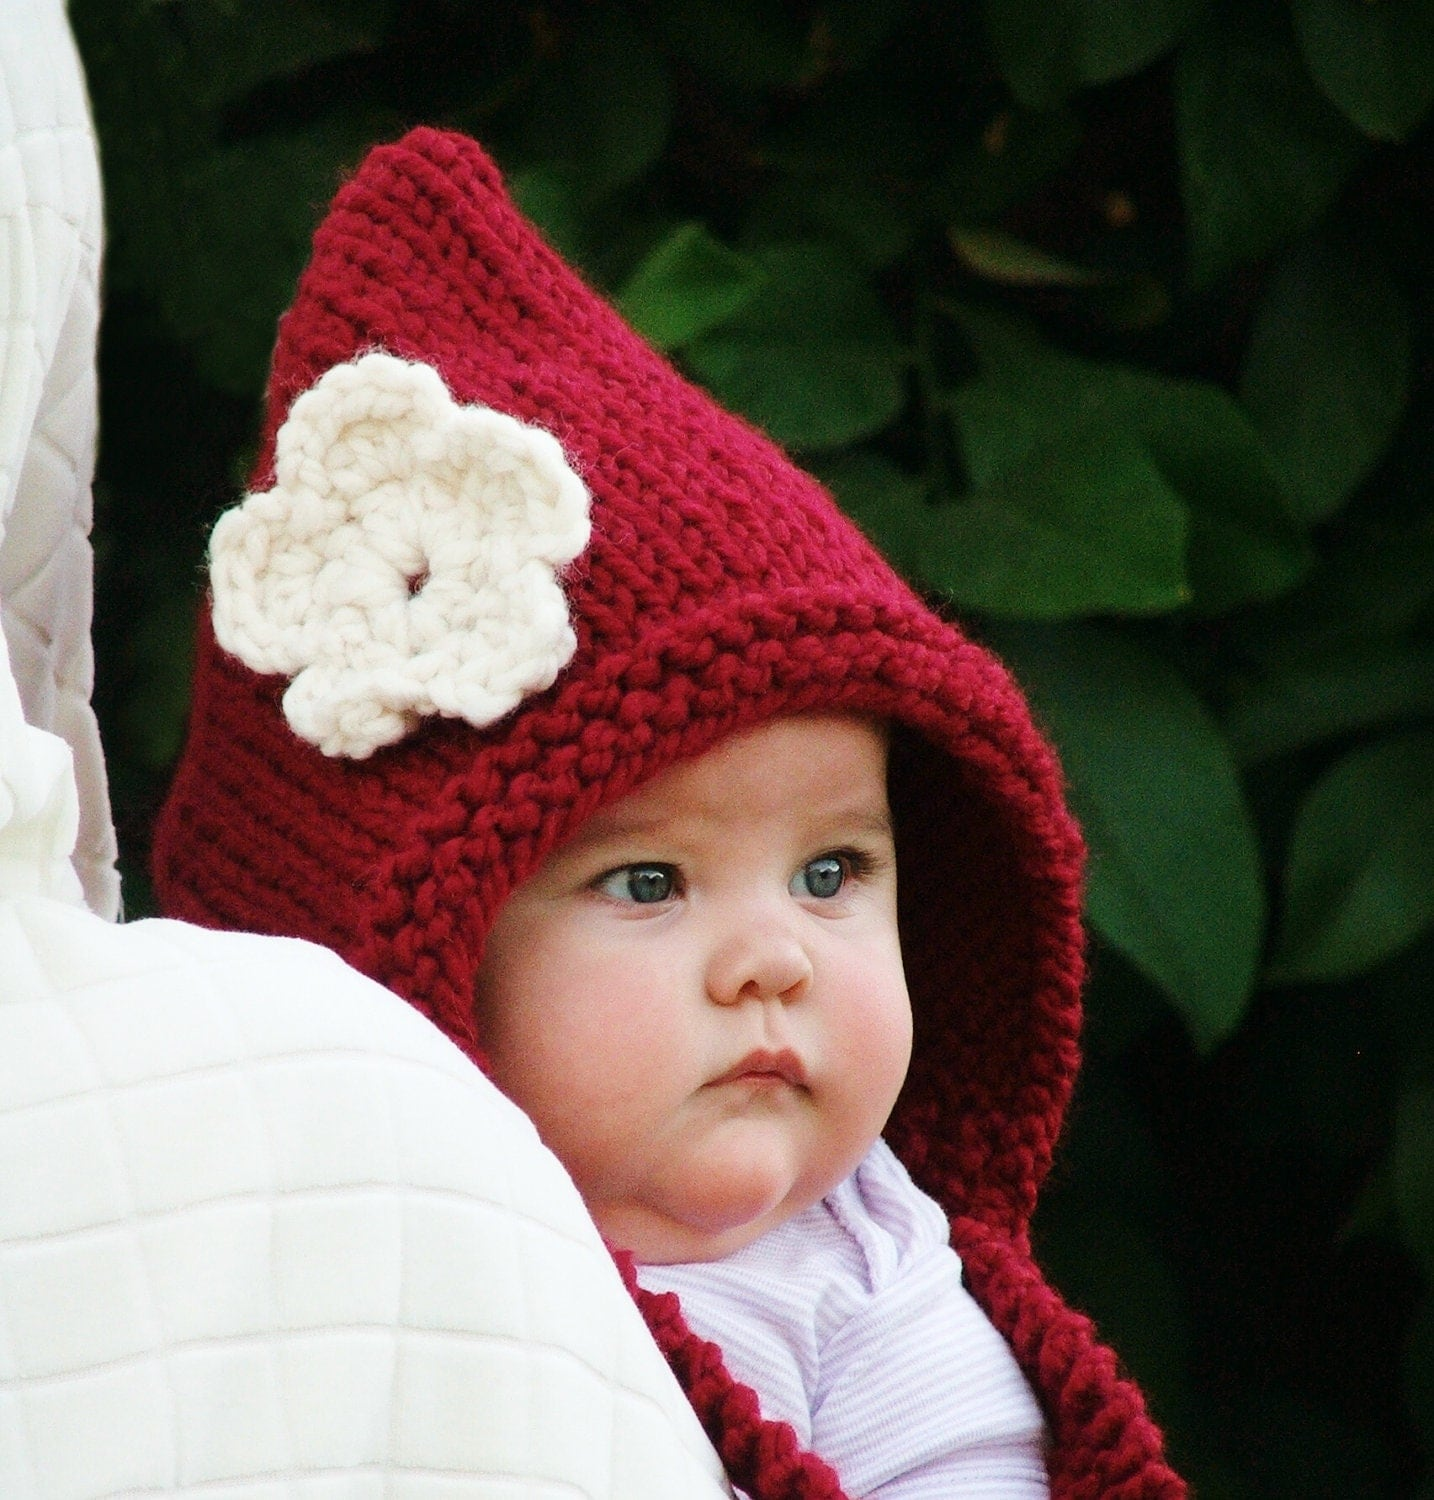 Baby Pixie Hat Red Riding Hood Knit Baby Hat Newborn by CreatiKnit